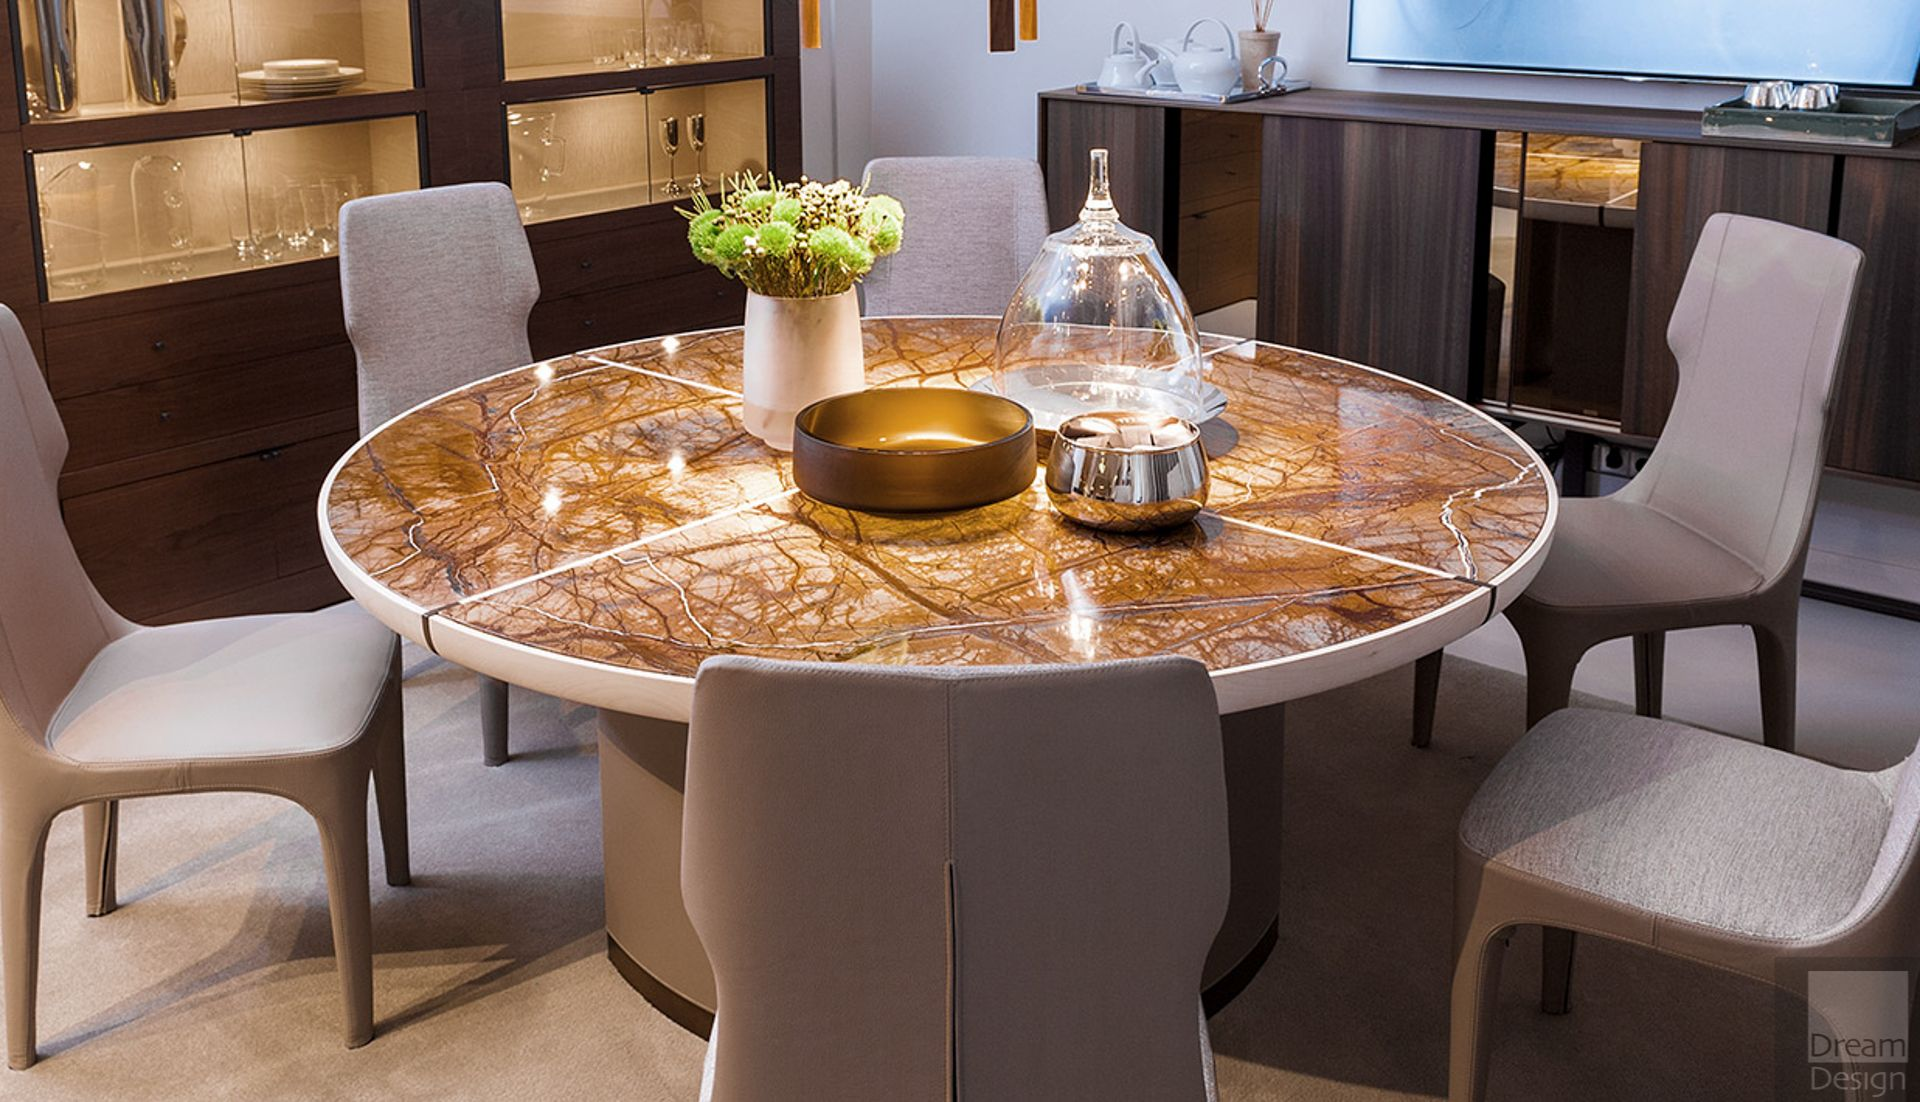 Gordon Round Table in 2020 Table, Furniture